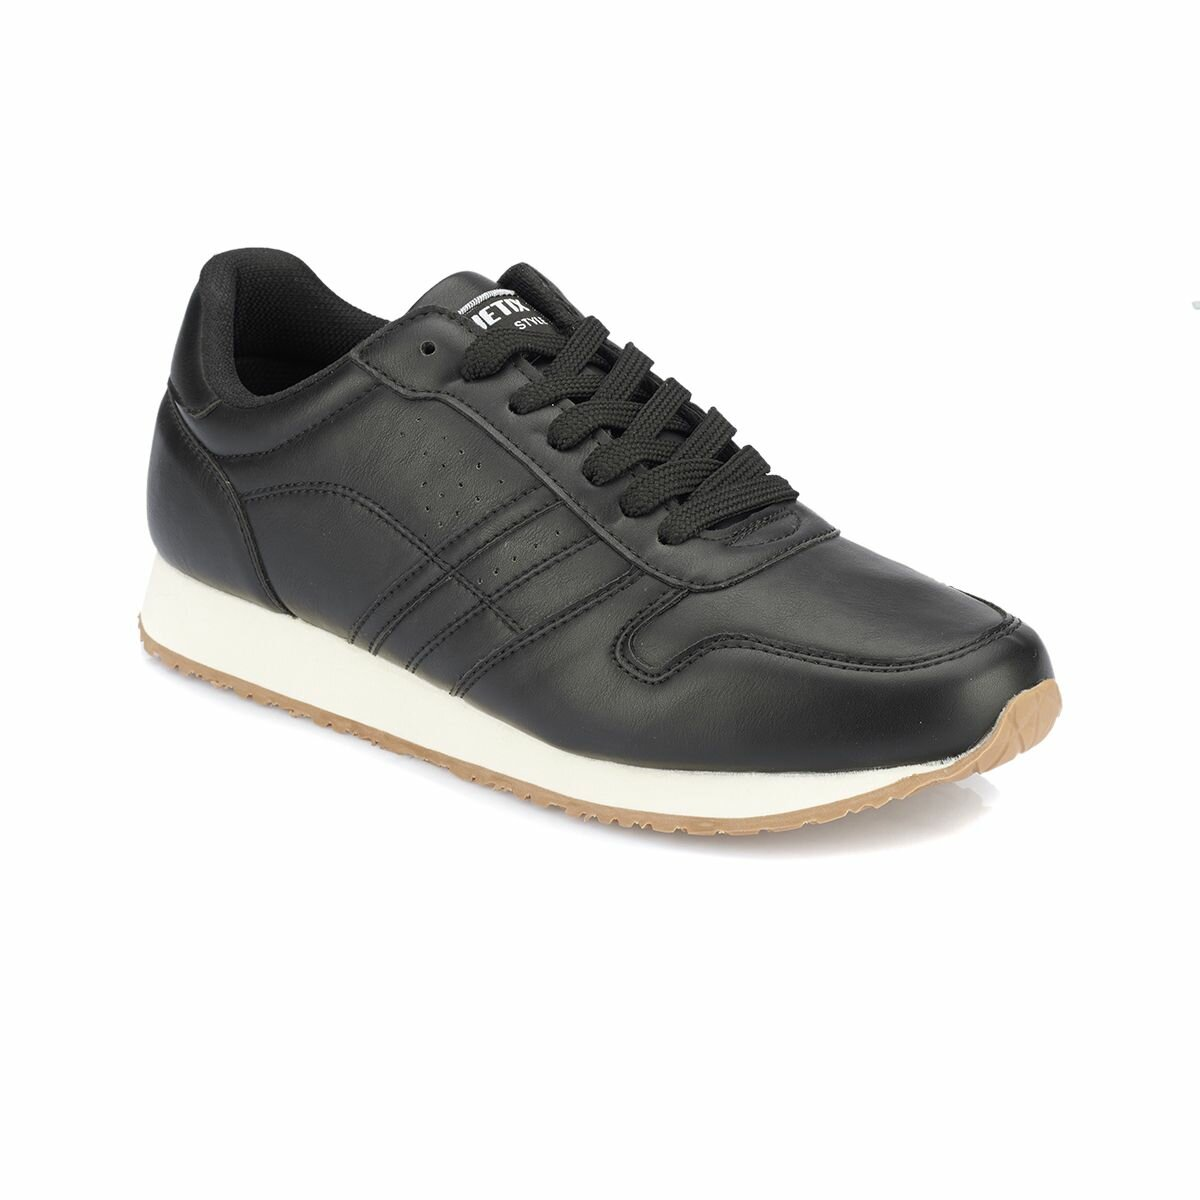 FLO JANKO W Black Male Shoes KINETIX